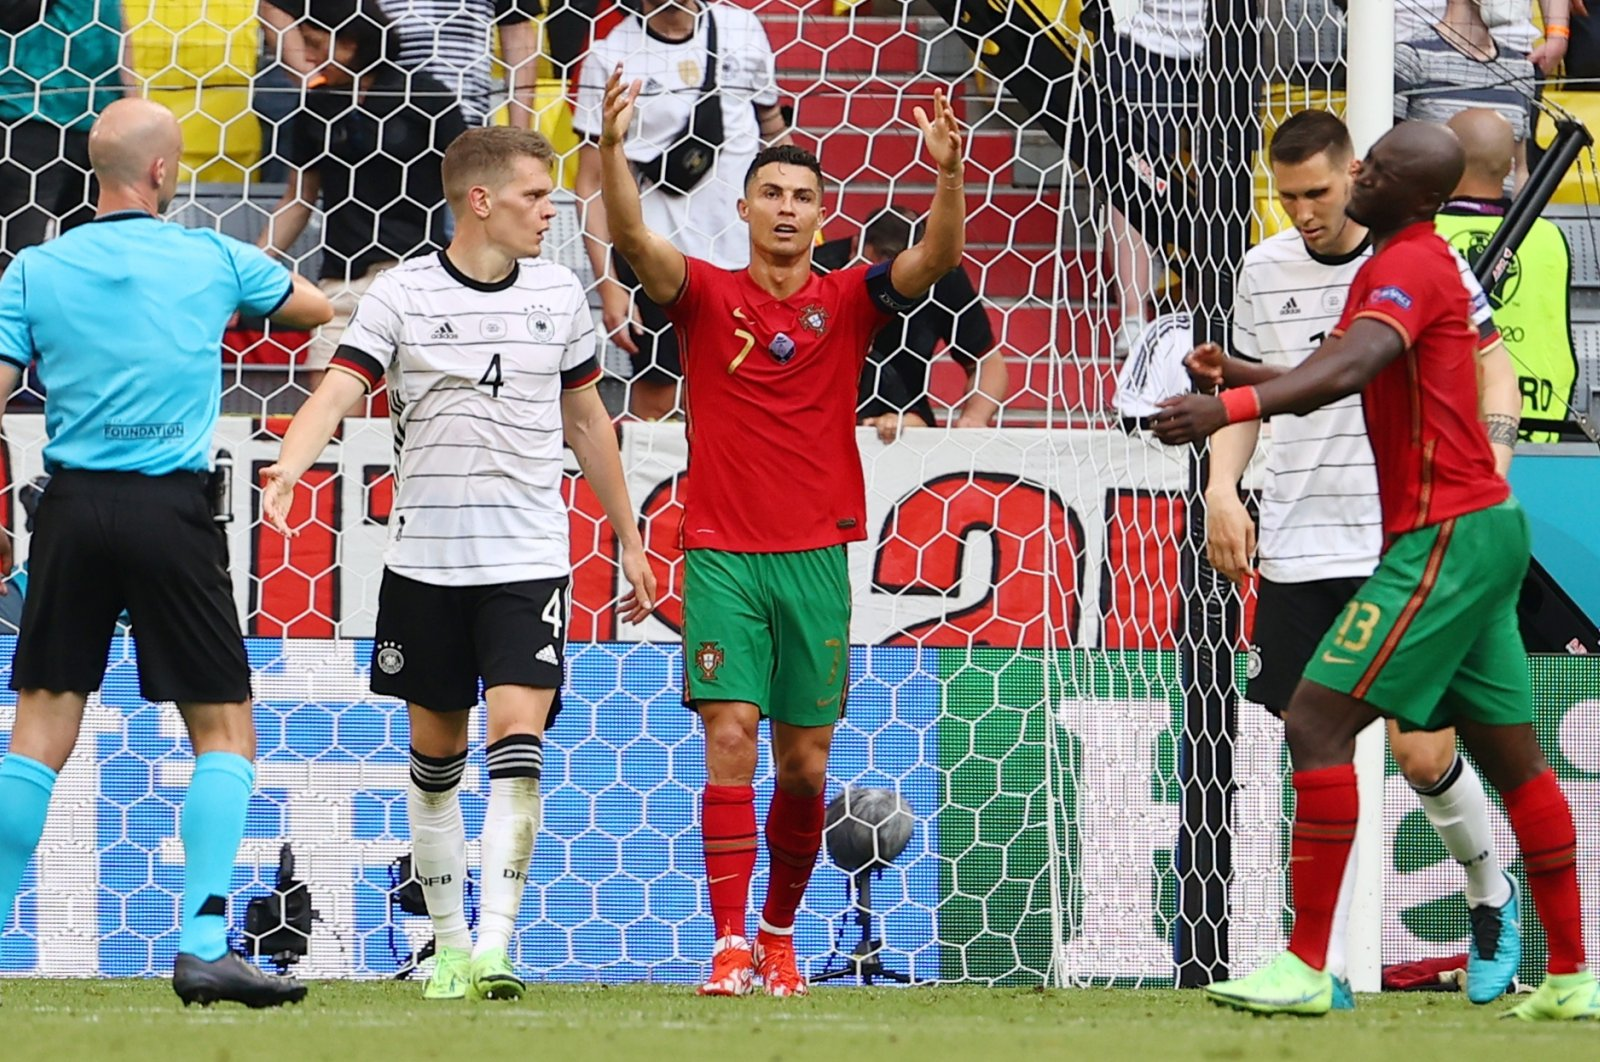 Portugal's own-goal galore gives Germany hope in Euro 2020